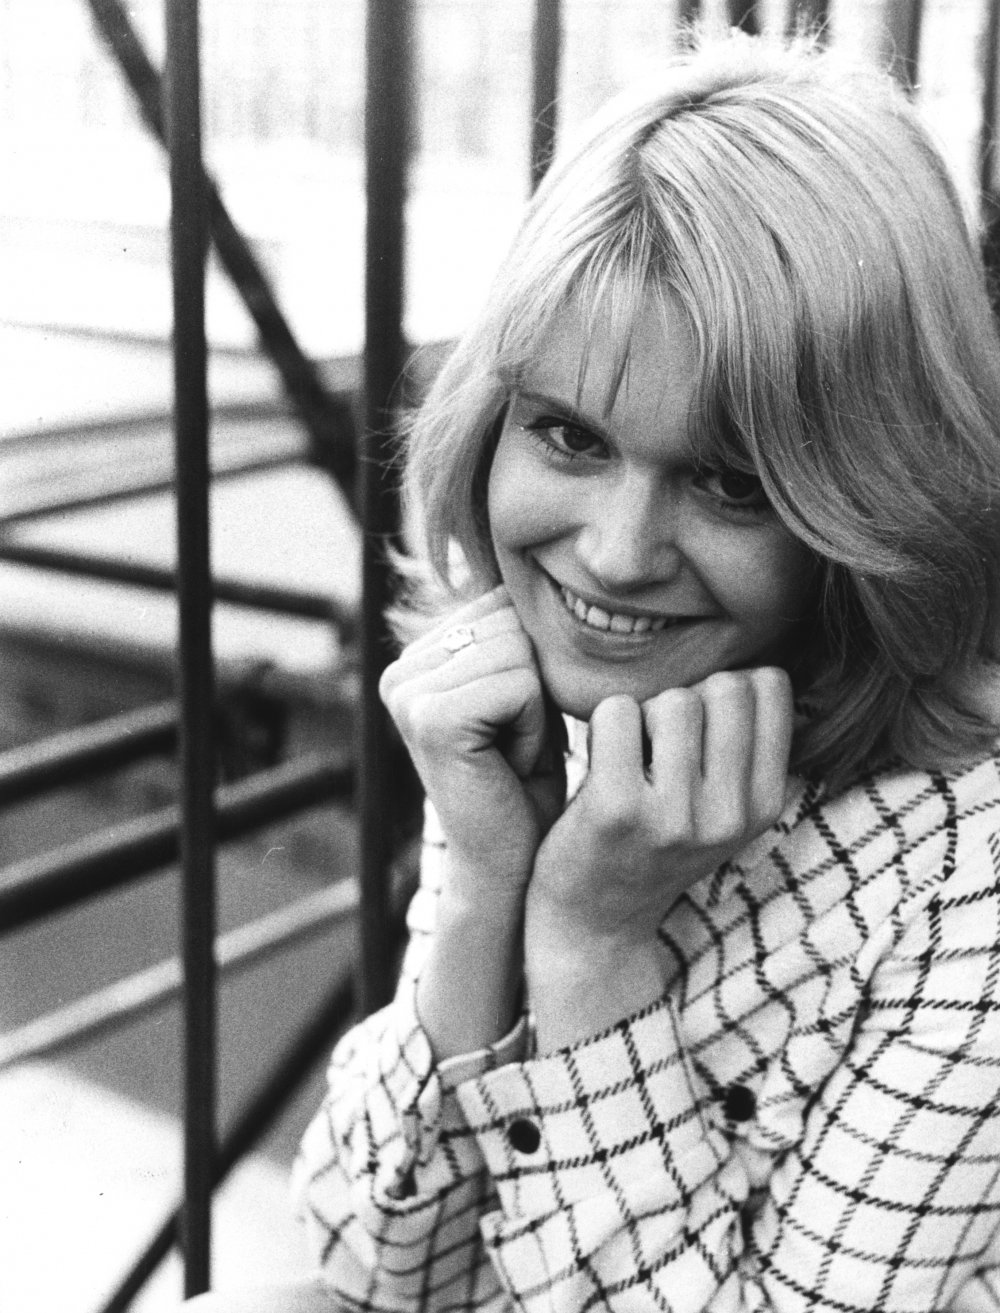 Carol White on location with Cathy Come Home (1966)